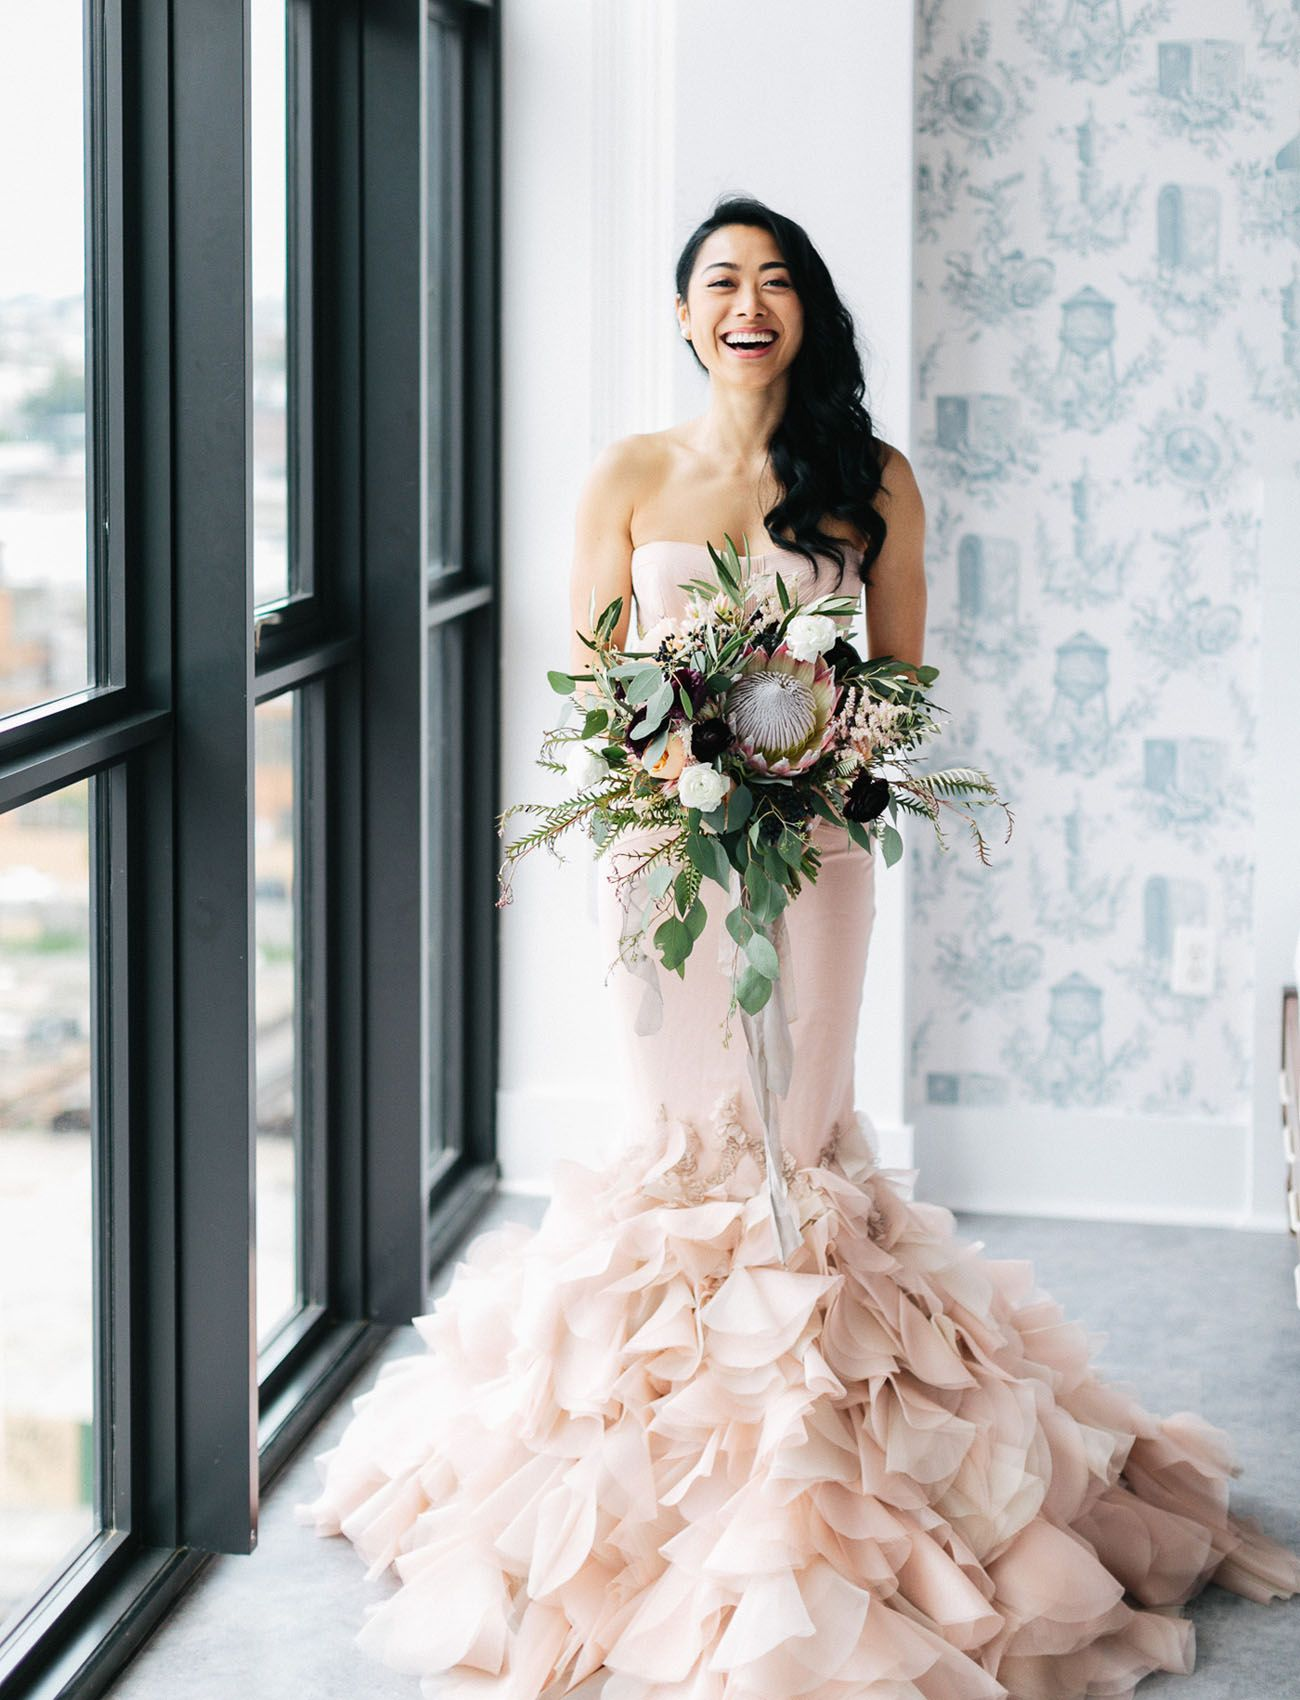 The Bride Wore A Stunning Blush Dress At This Industrial Modern Wedding Vera Wang